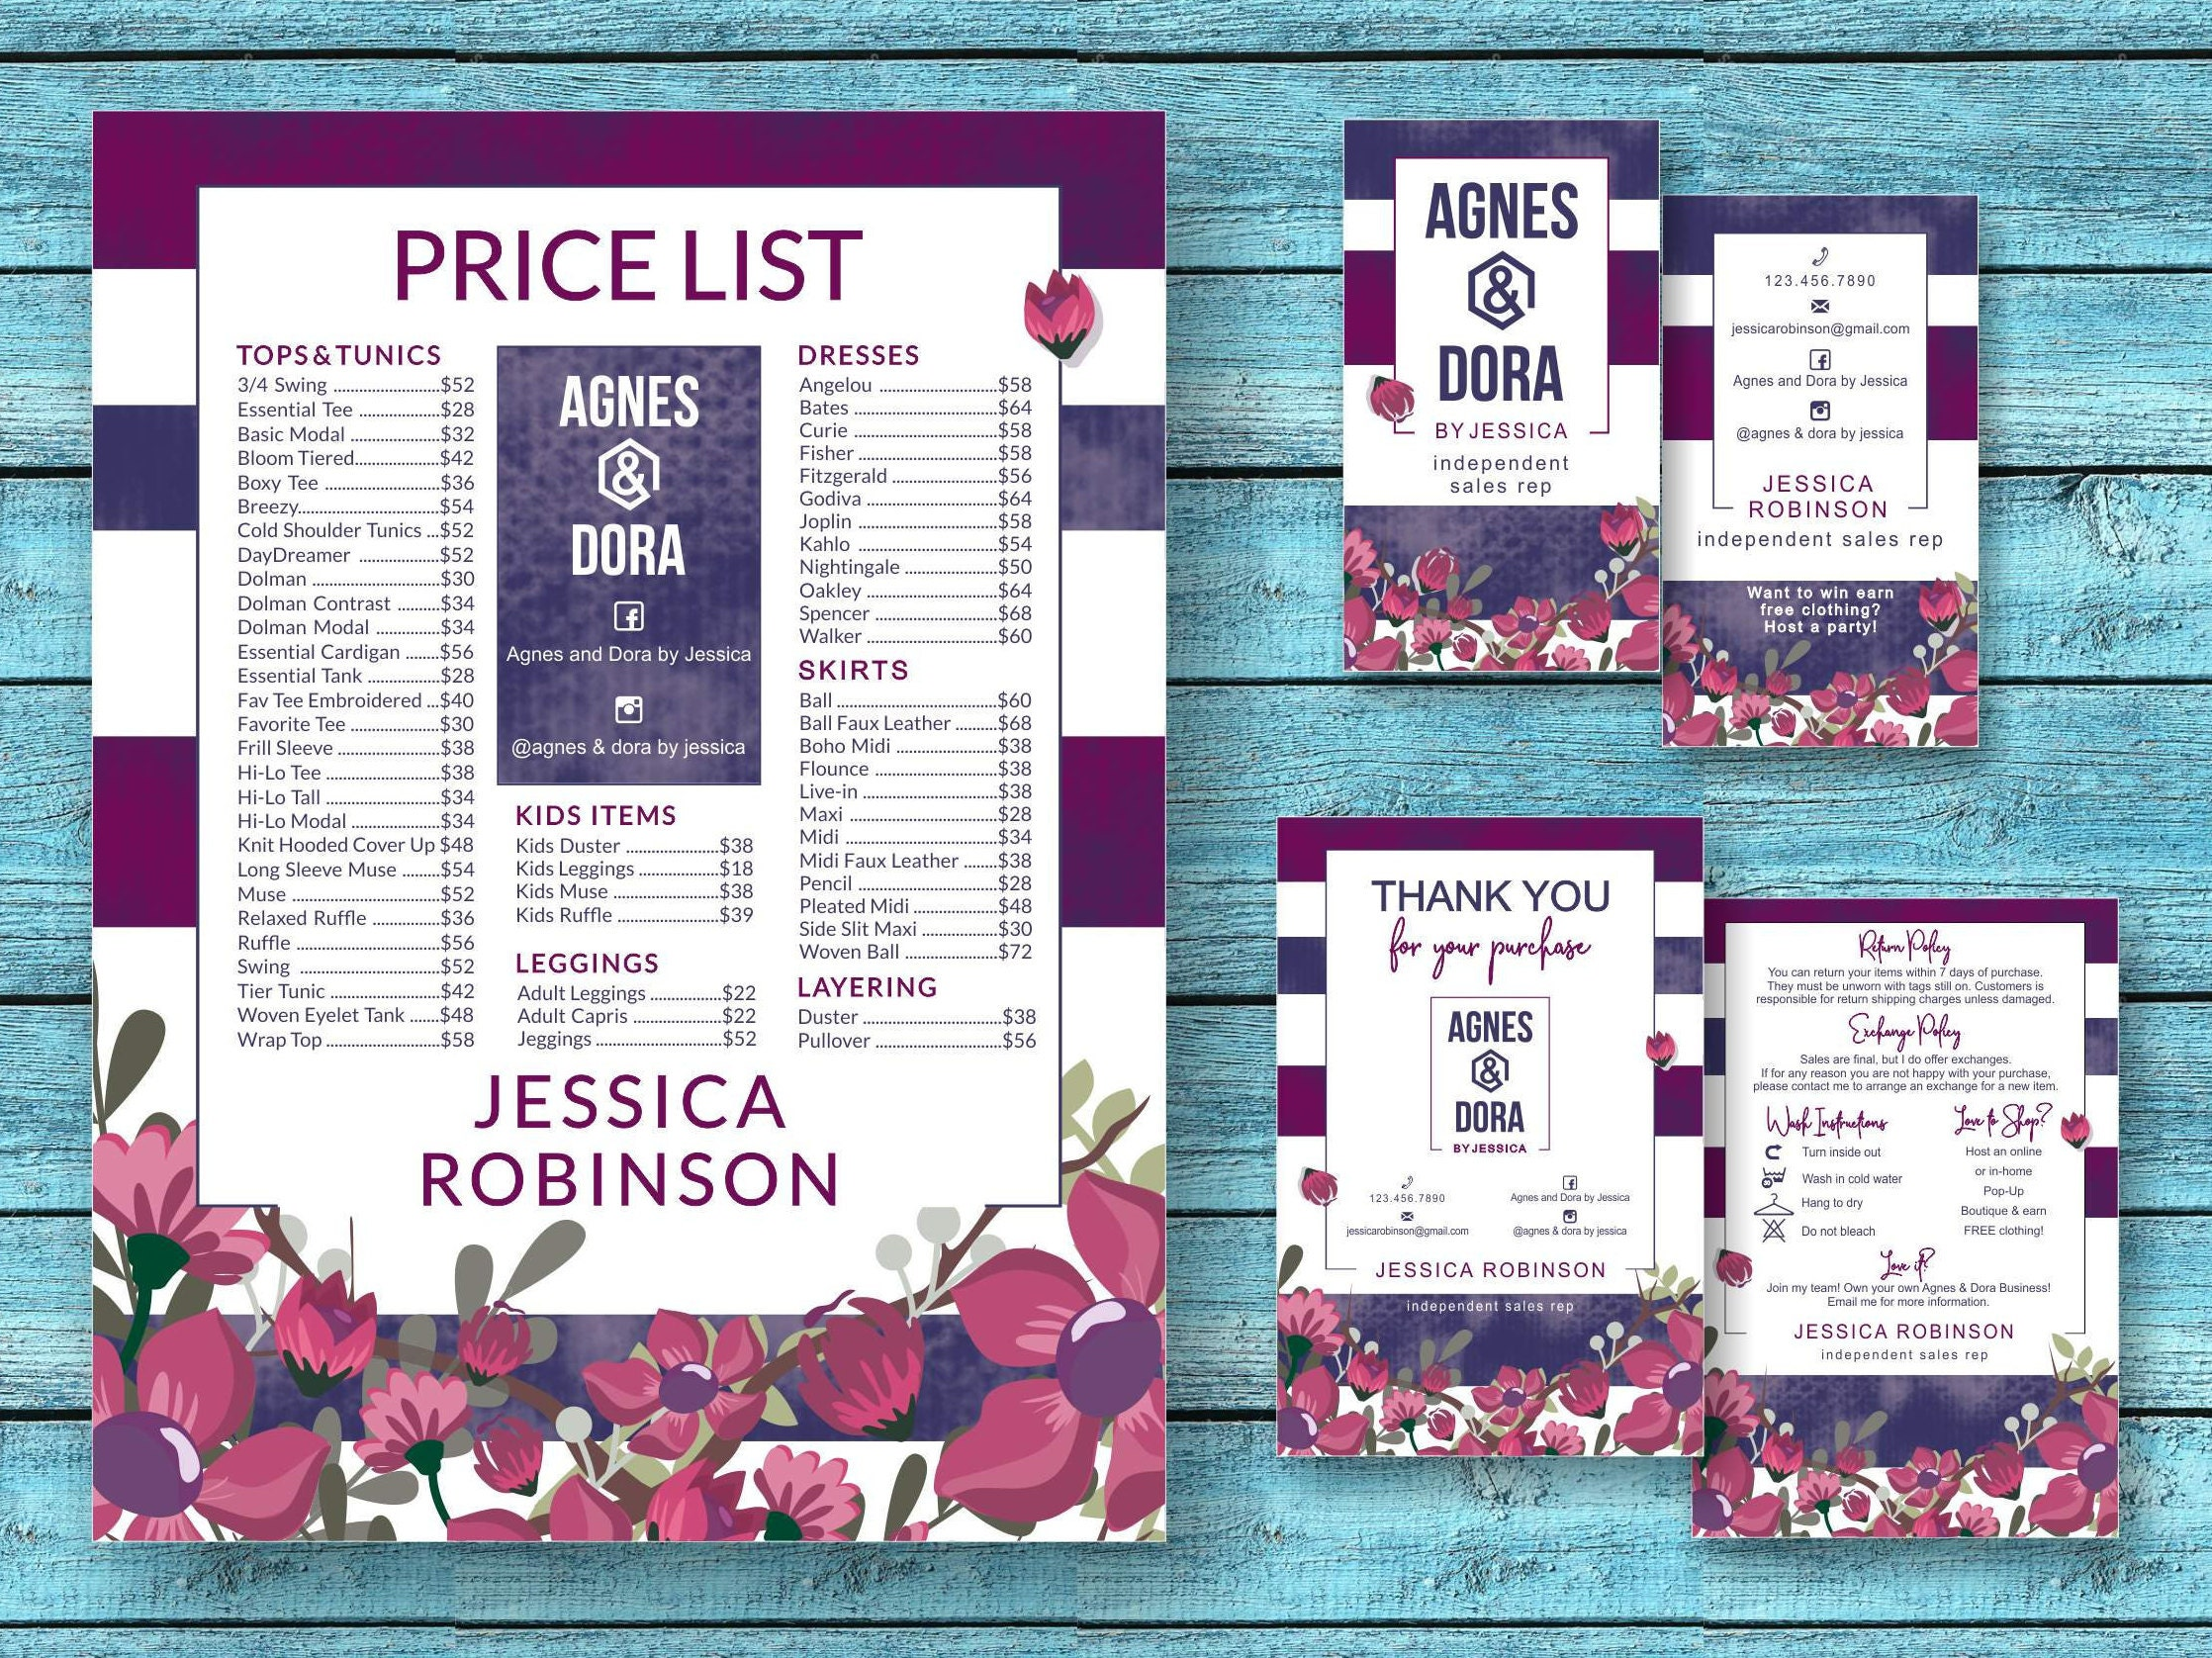 agnes and dora marketing kit business cards price chart